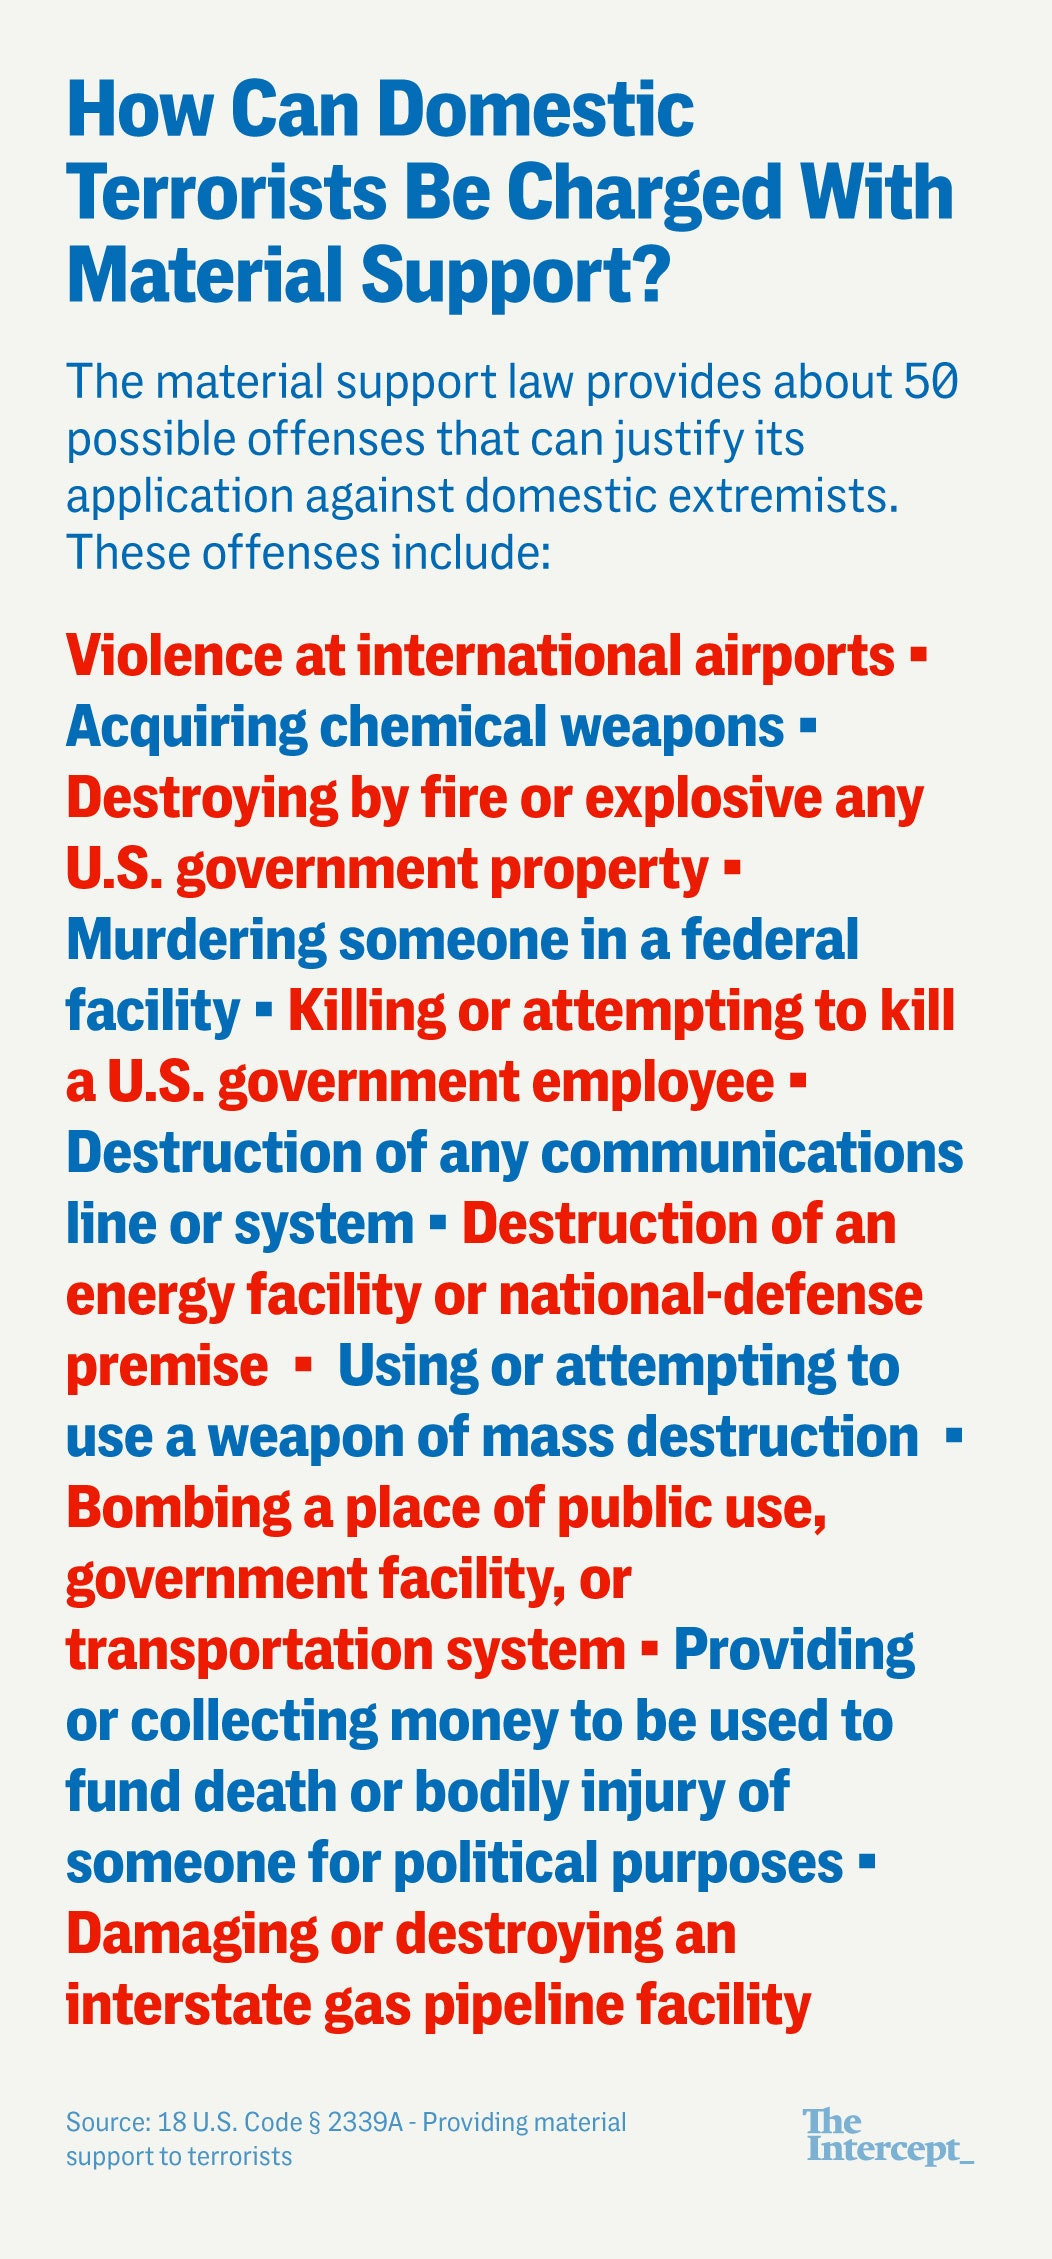 Constitutional Issues in Federal Management of Domestic Terrorism Incidents